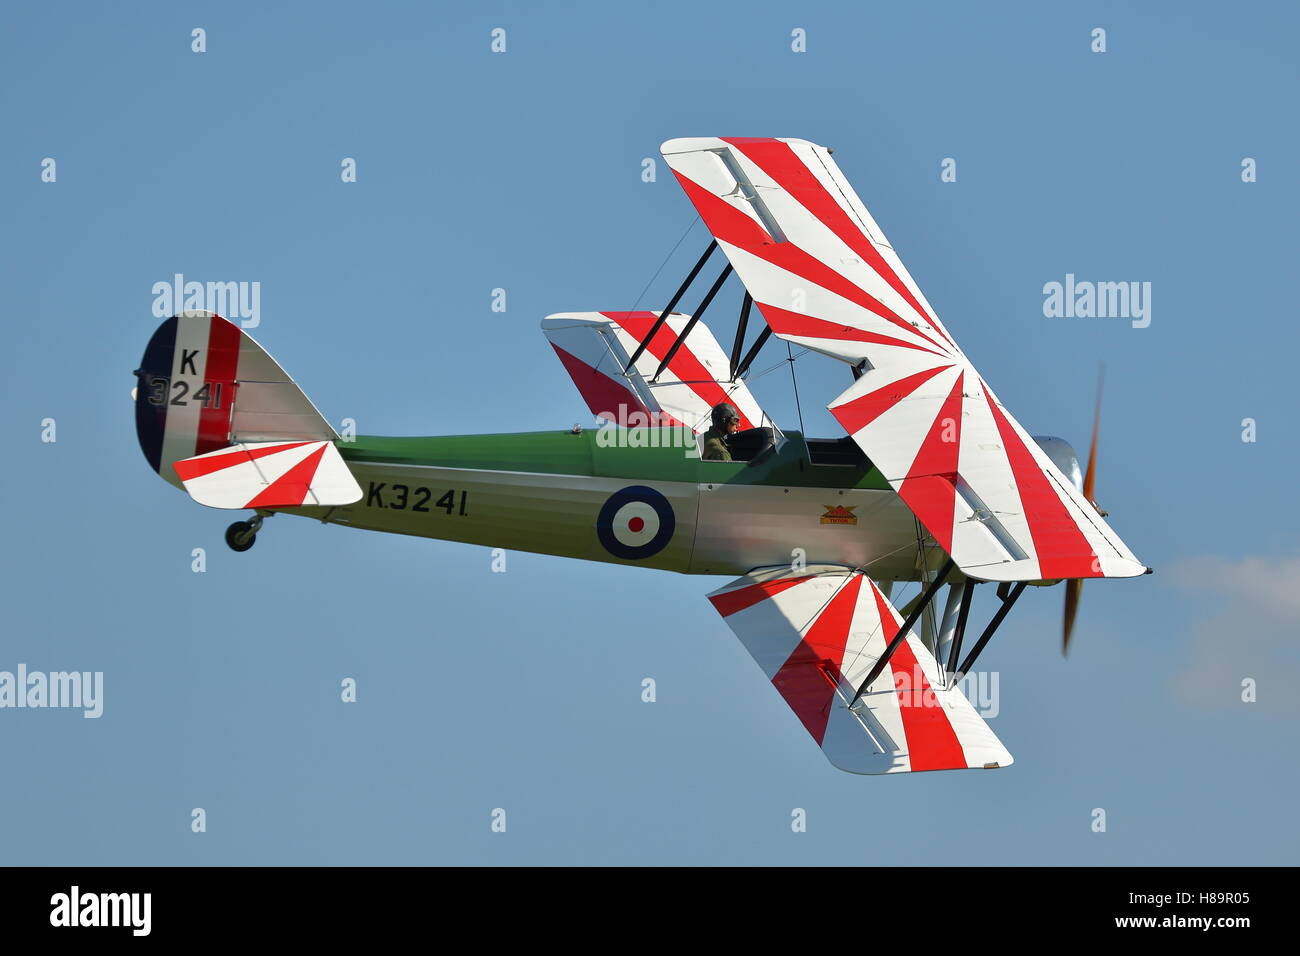 Shuttleworth Collection's Avro 621 Tutor G-AHSA at an Air Show at Old Warden, UK - Stock Image